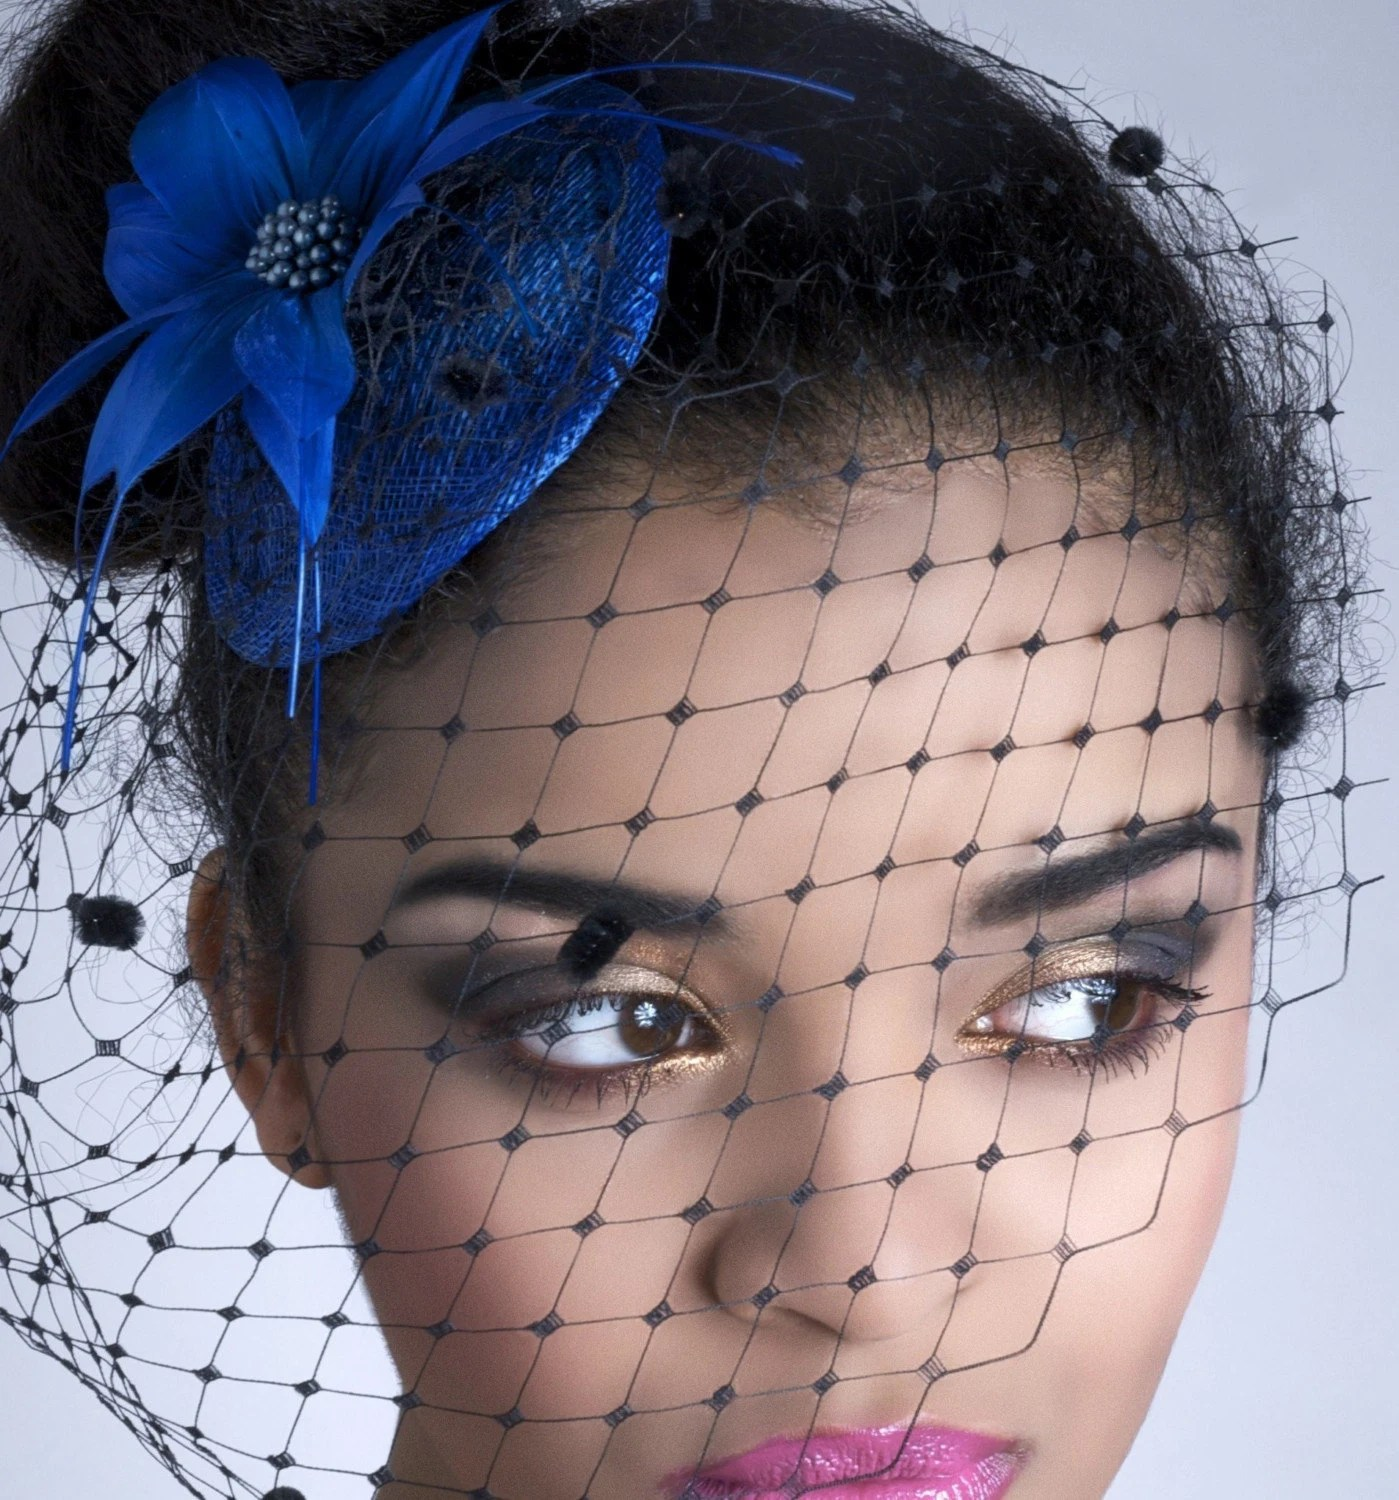 Rome Fascinator - Feather flower headpiece and birdcage veil.